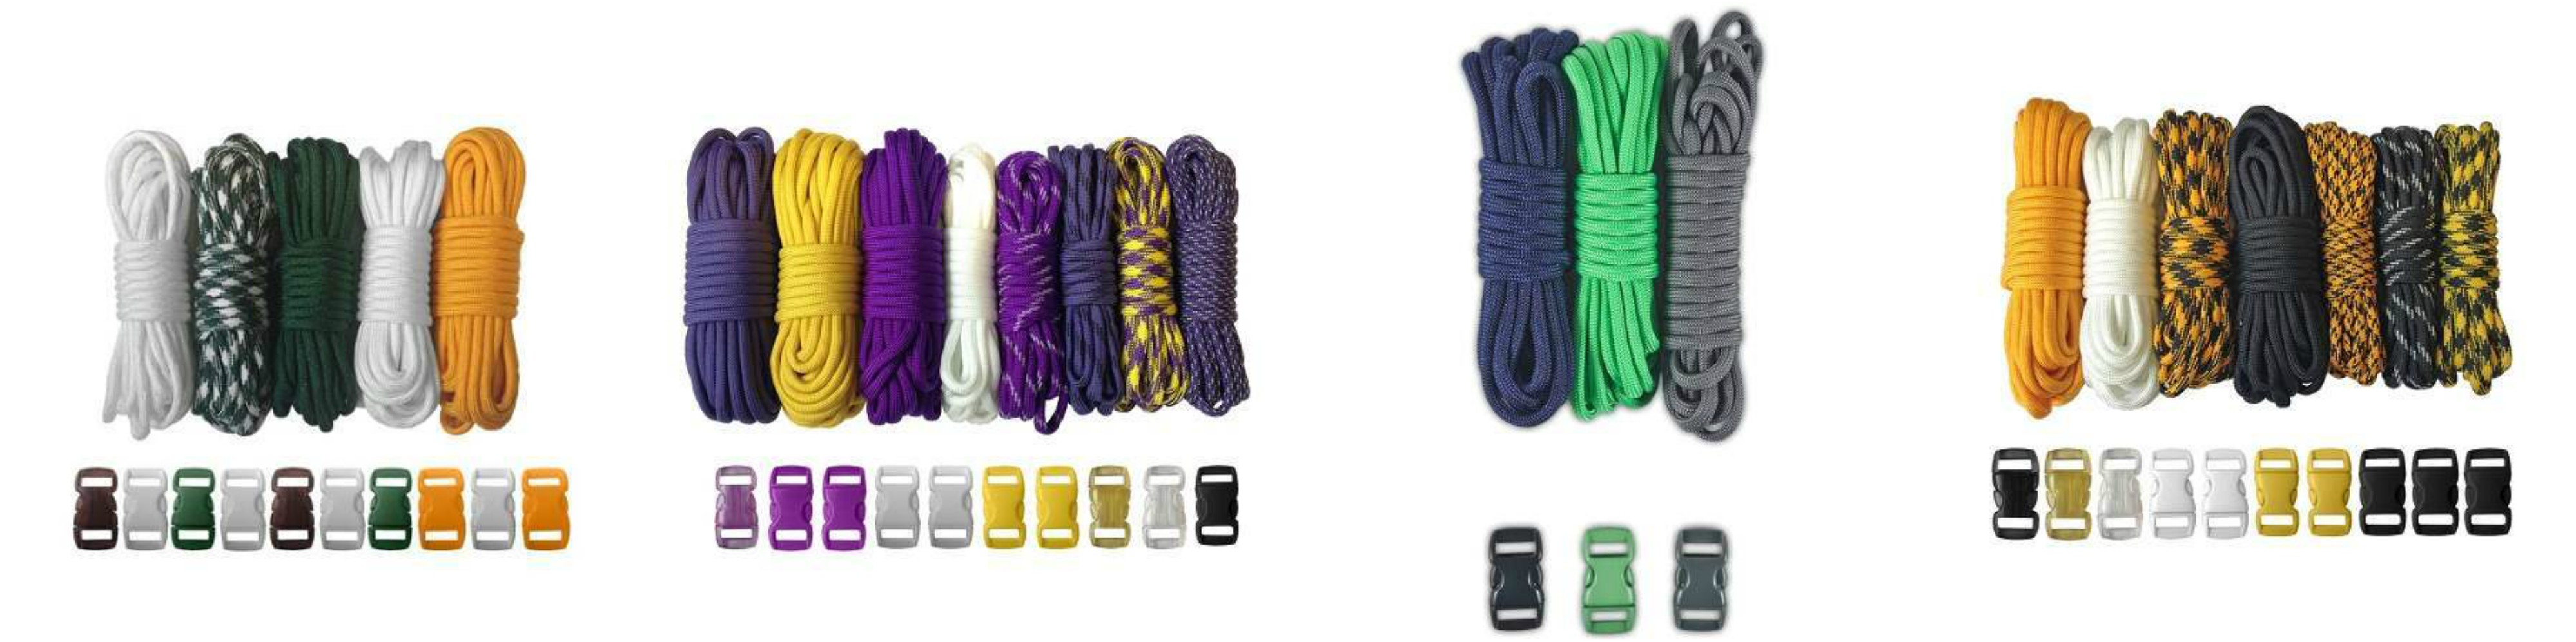 USA Theme Paracord Kits